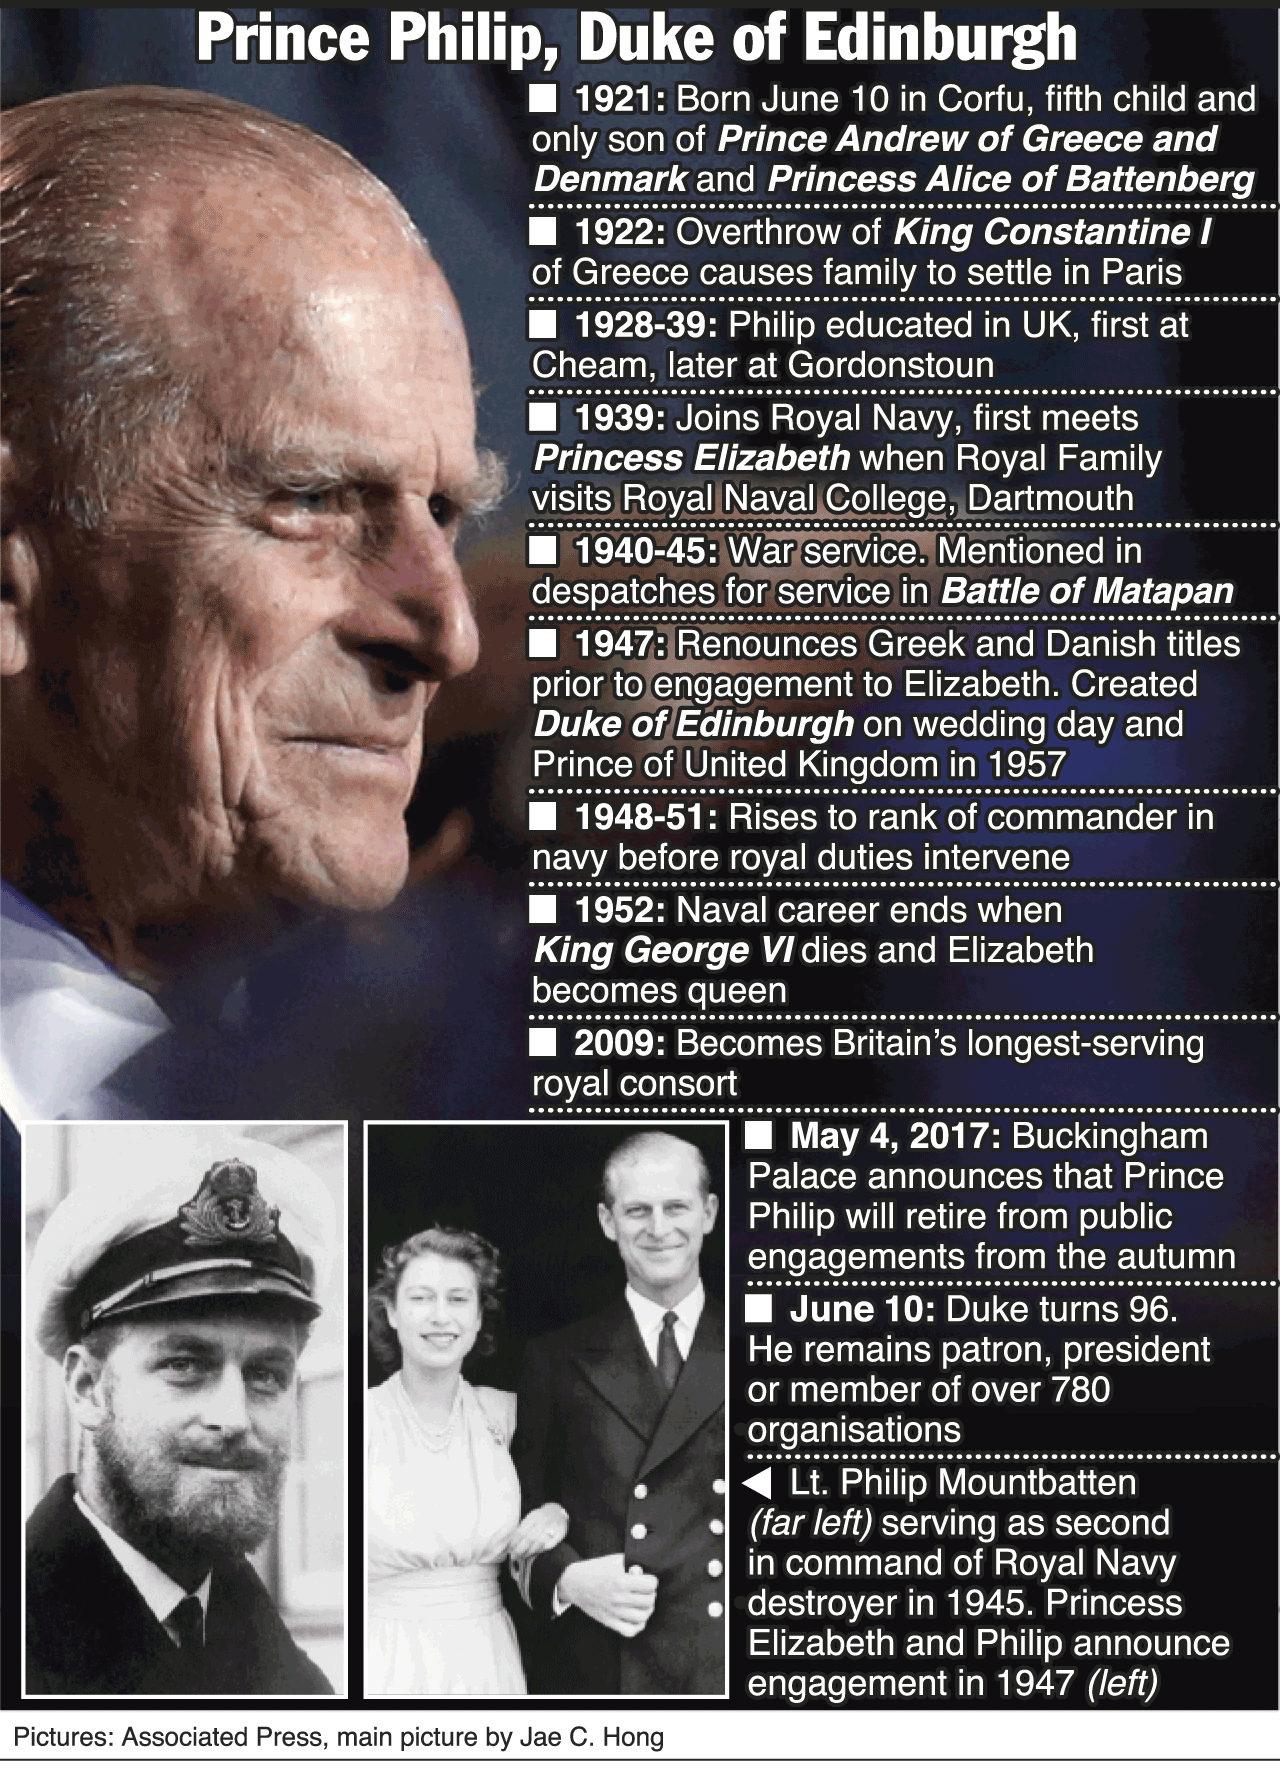 Prince Philip Quotes Why Is Prince Philip A Prince And Not King  The Hindu